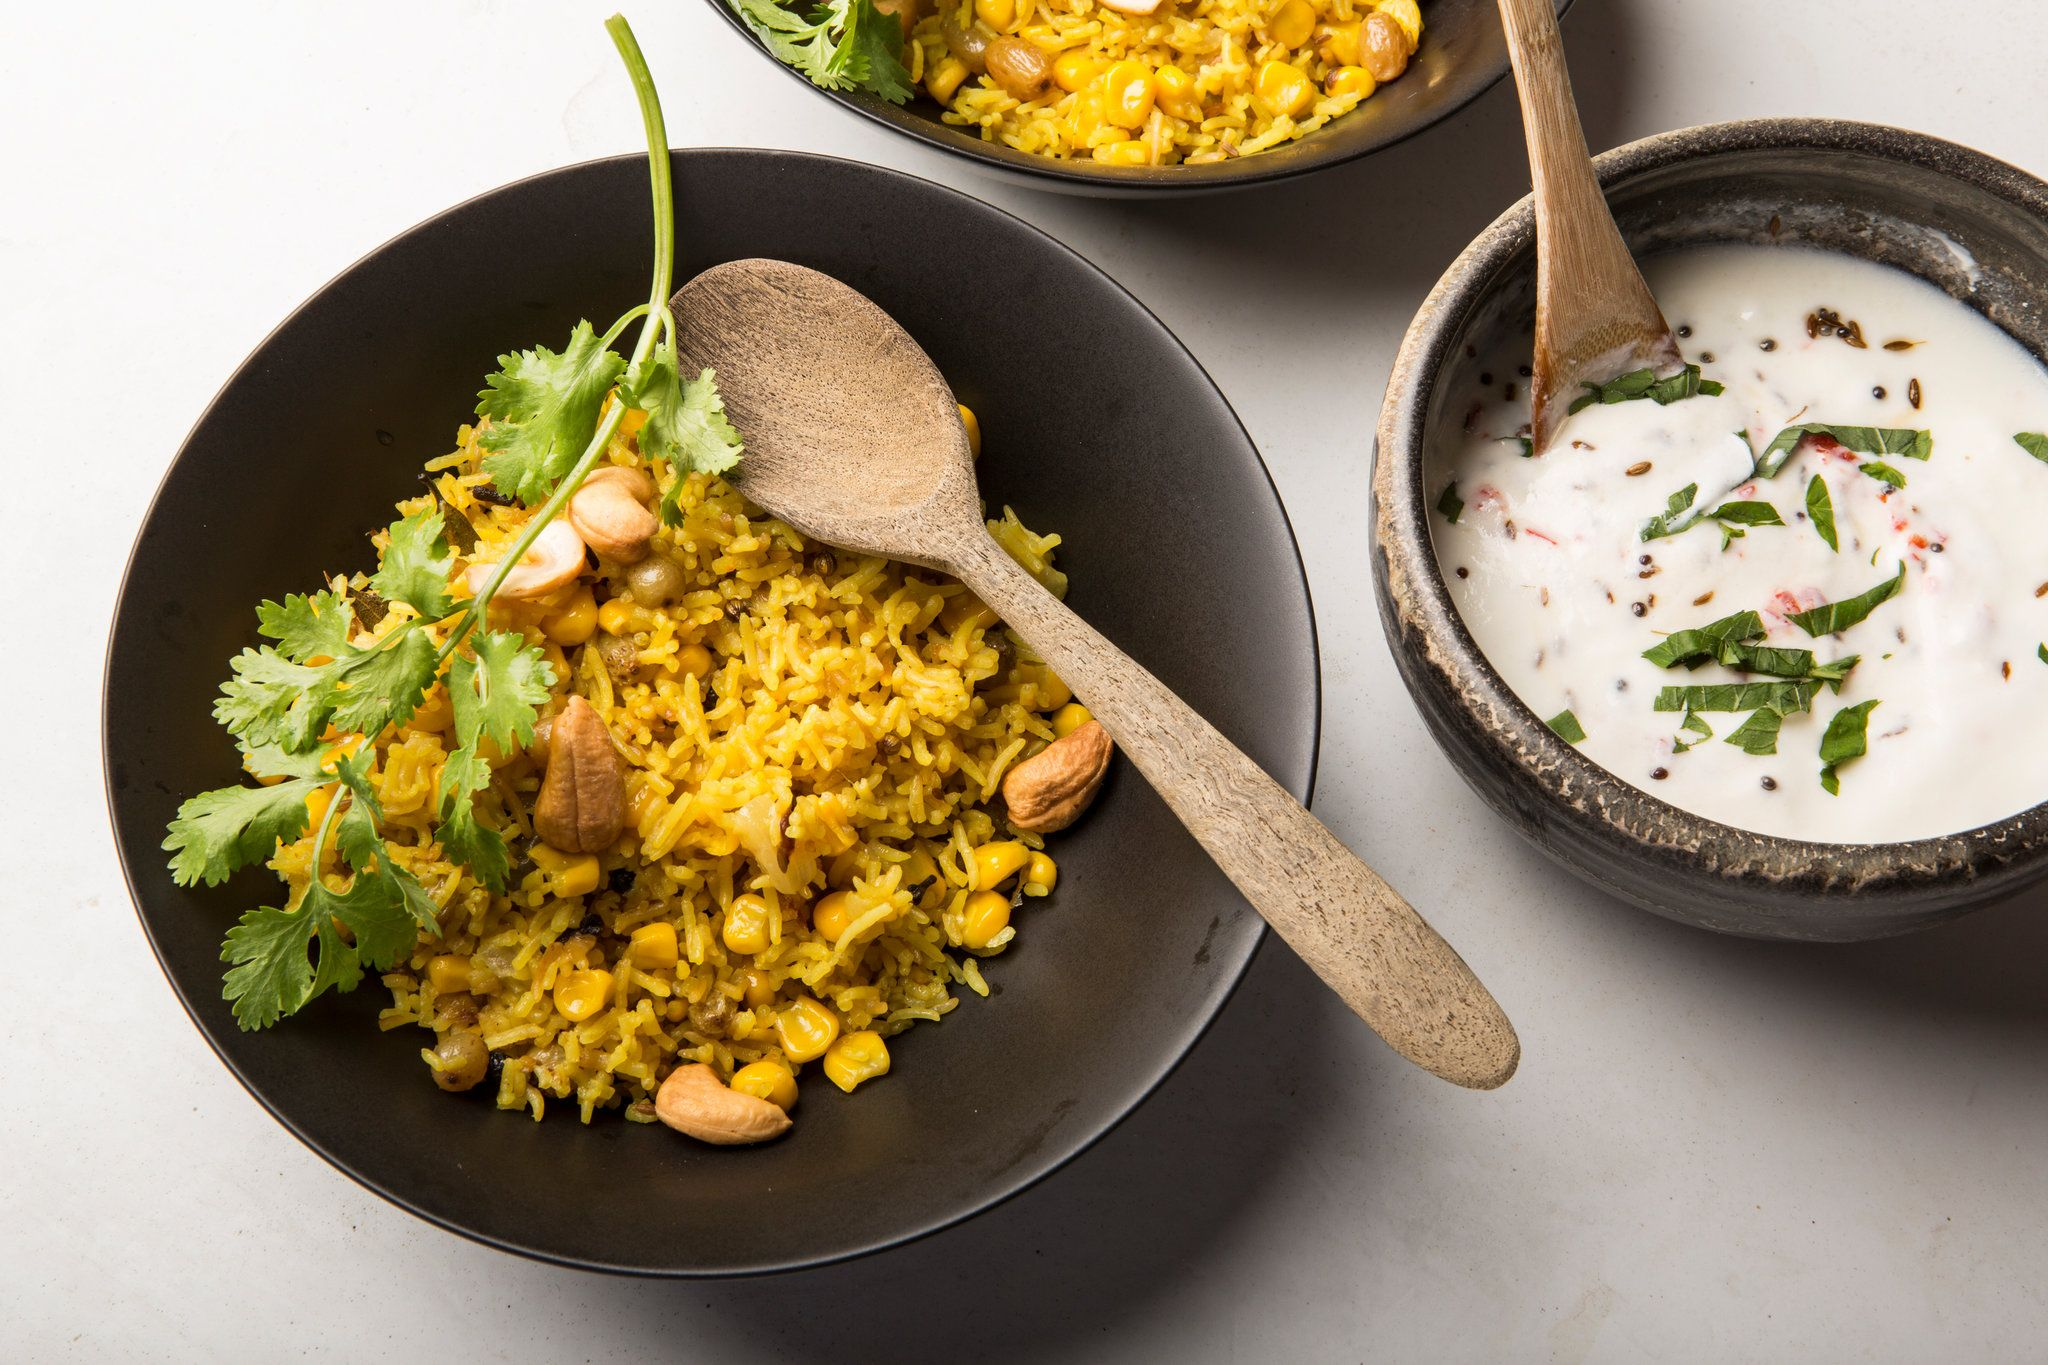 Spiced basmati rice and sweet corn pilaf recipe sweet corn spiced basmati rice and sweet corn pilaf recipe nyt cooking ccuart Choice Image